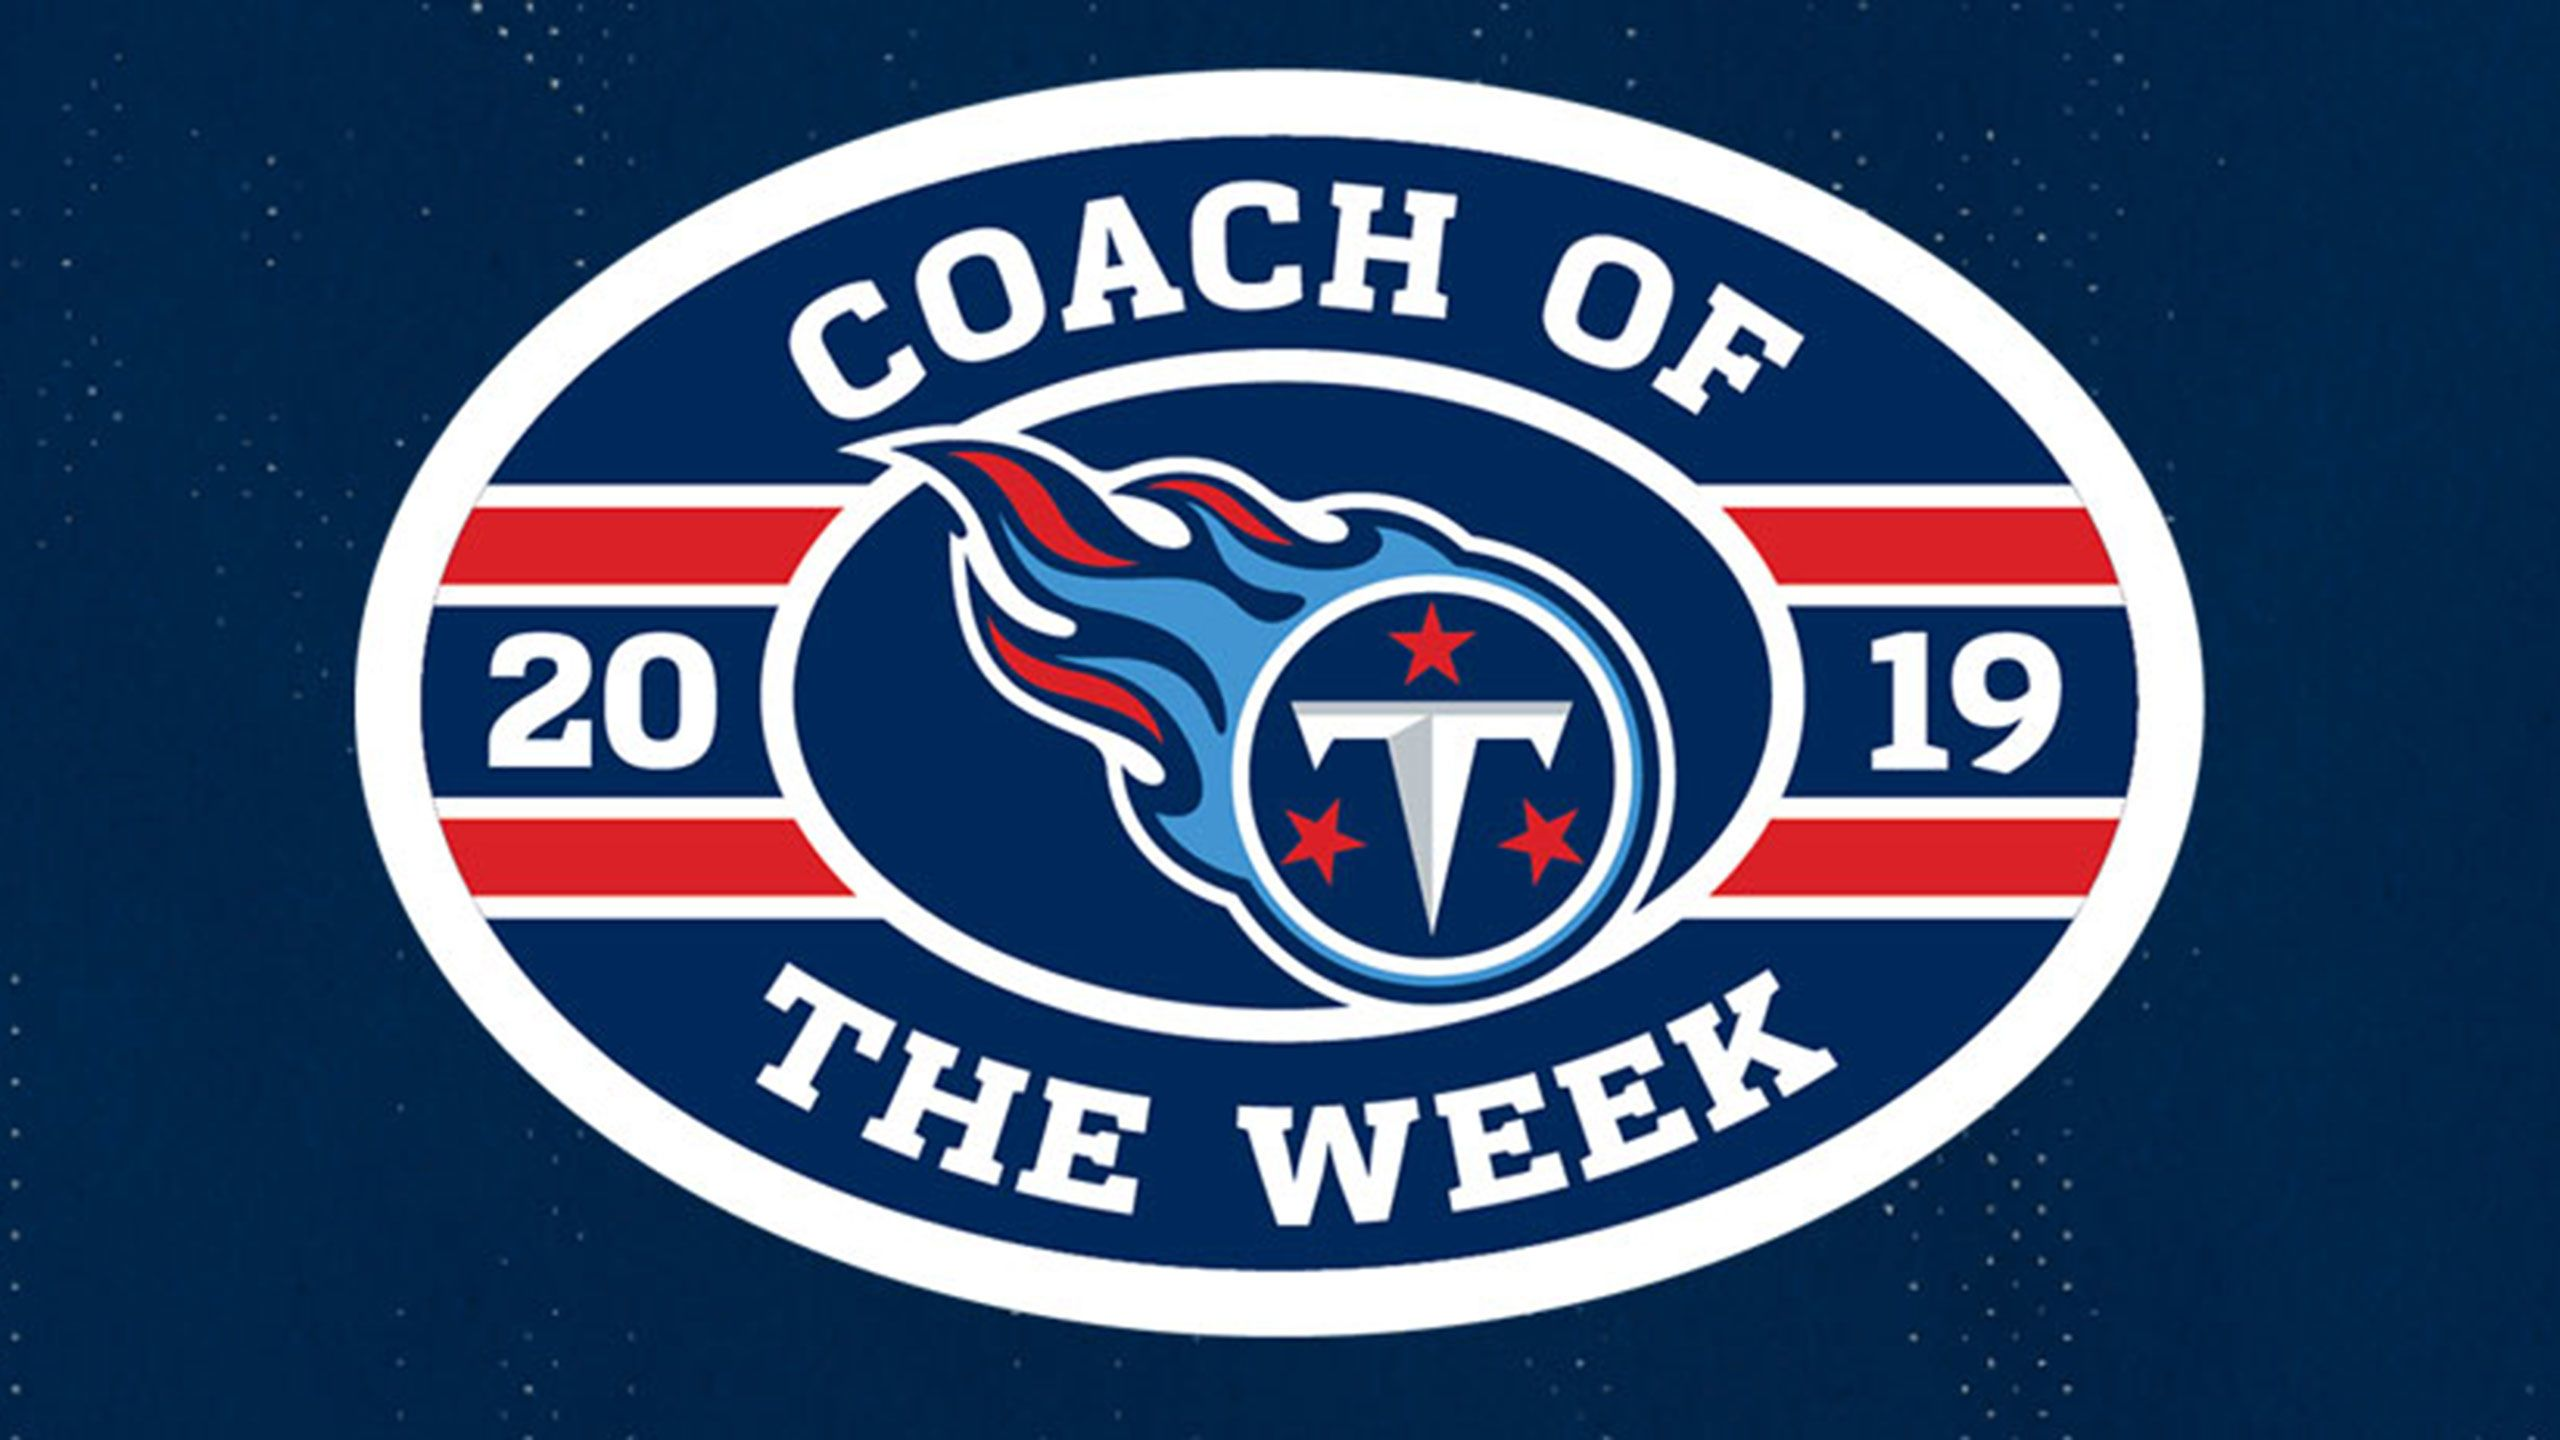 titans-high-school-coach-of-the-week-2019